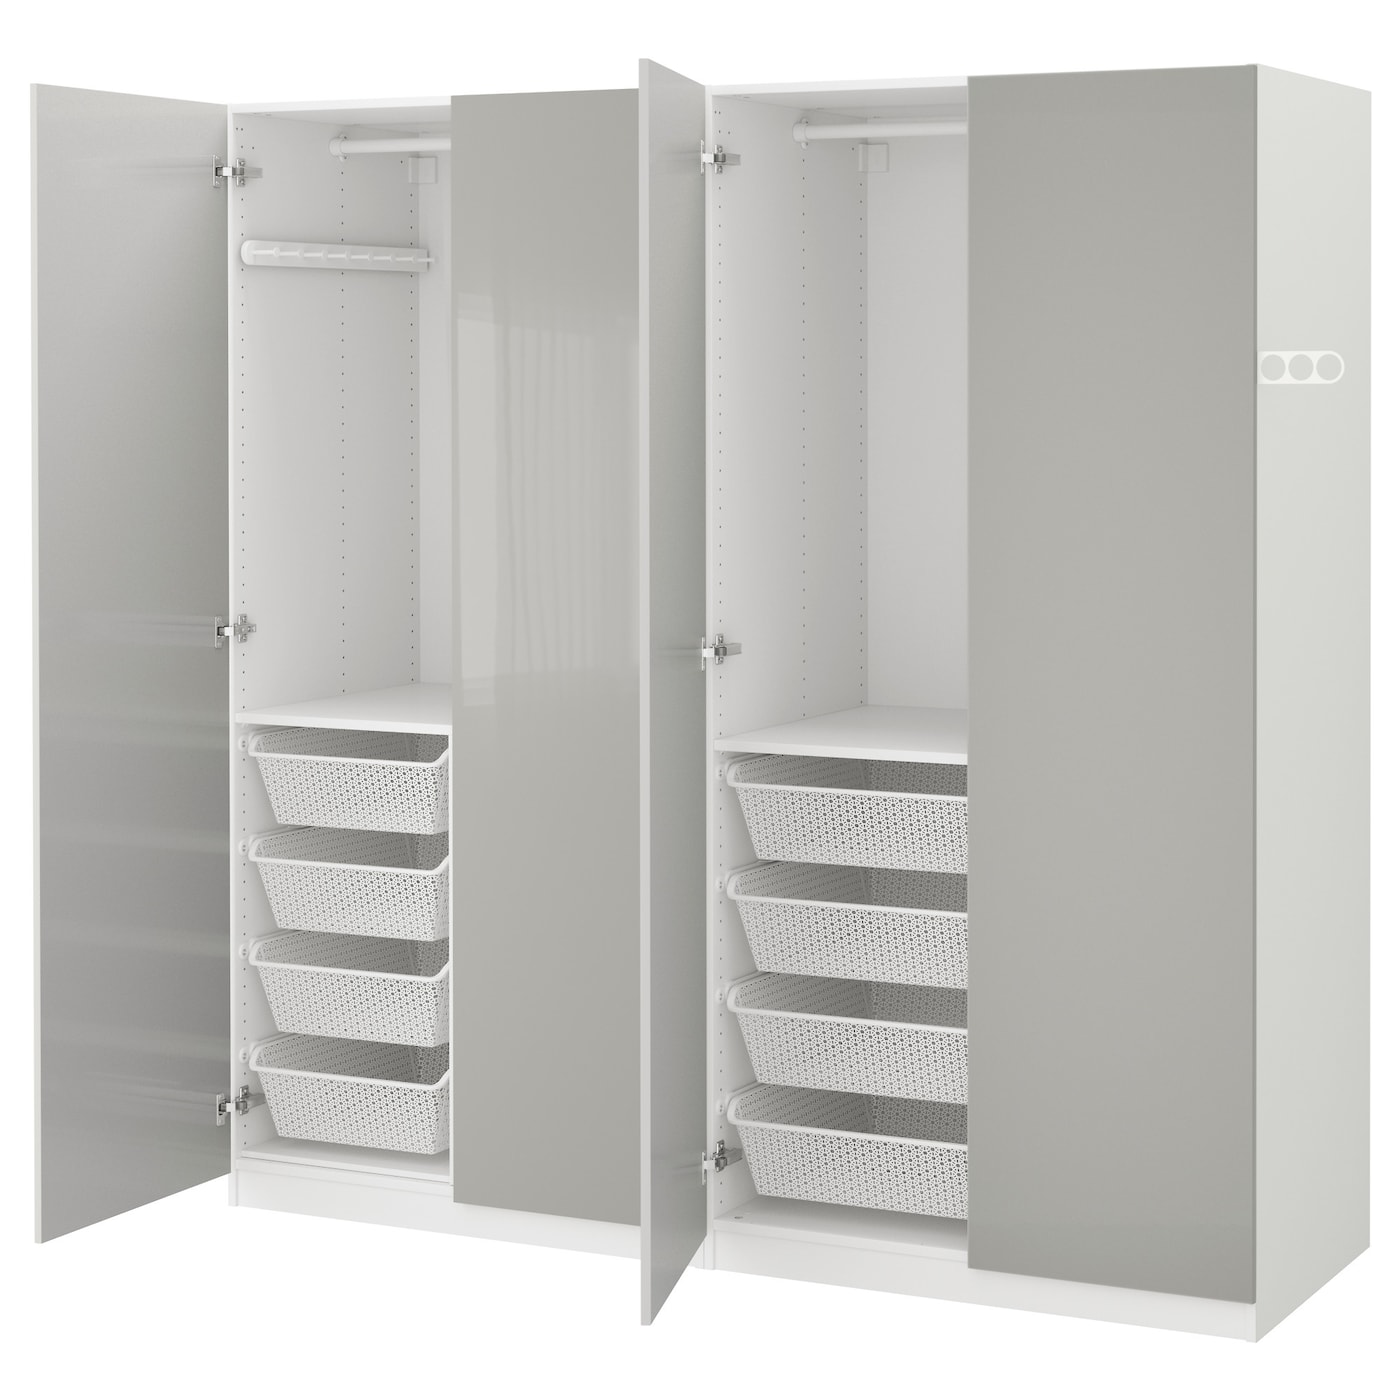 pax wardrobe white fardal high gloss light grey 200x60x201 cm ikea. Black Bedroom Furniture Sets. Home Design Ideas